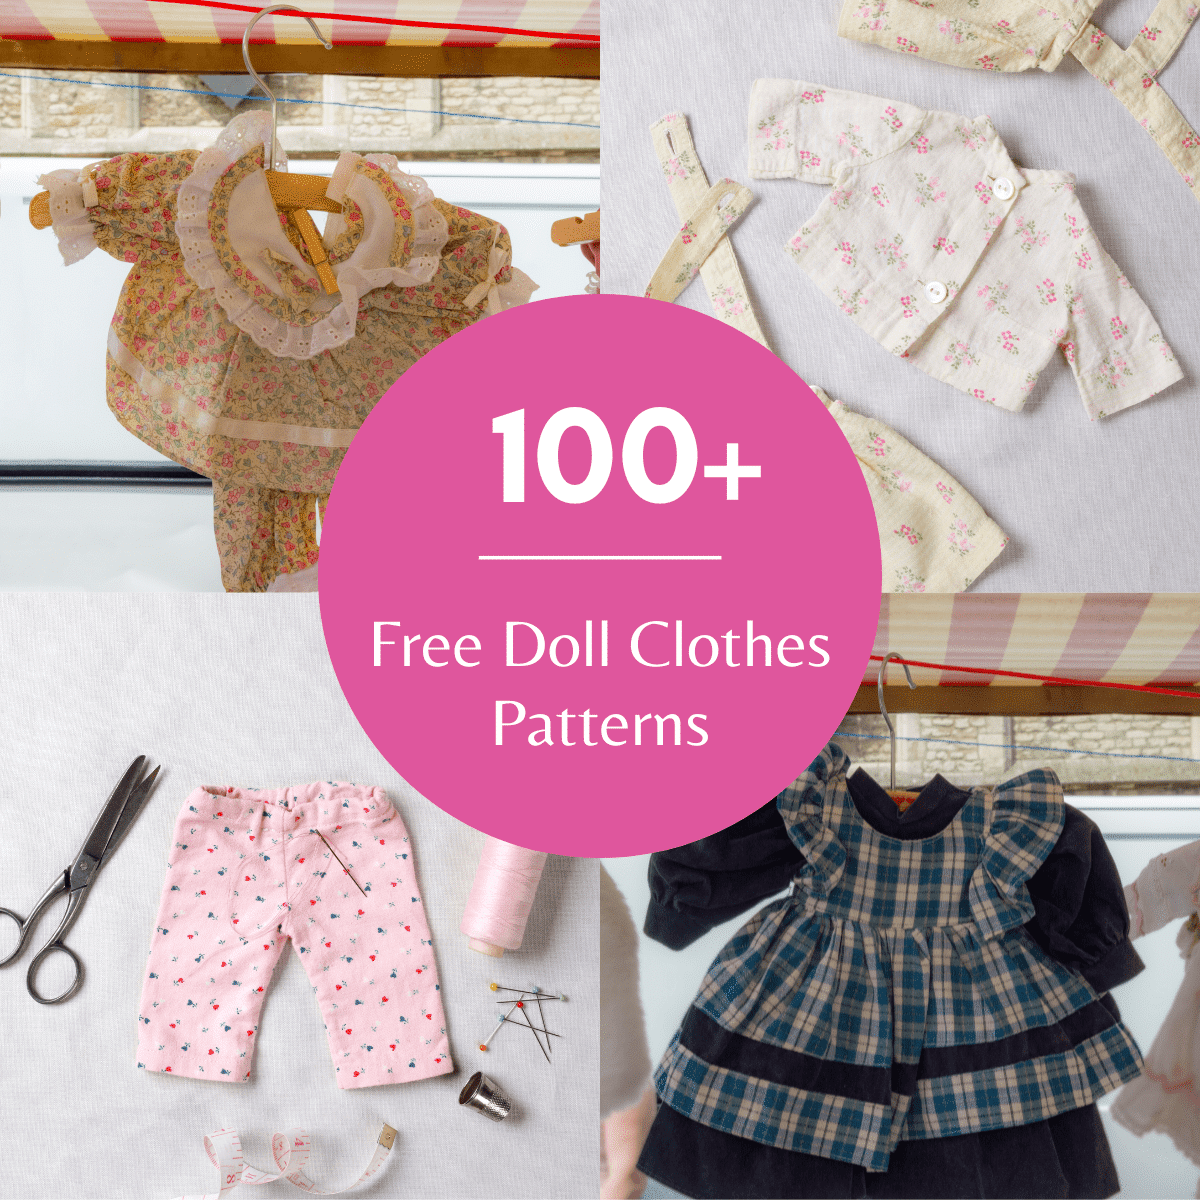 100+ Free Printable DIY Doll Clothes Patterns To Sew